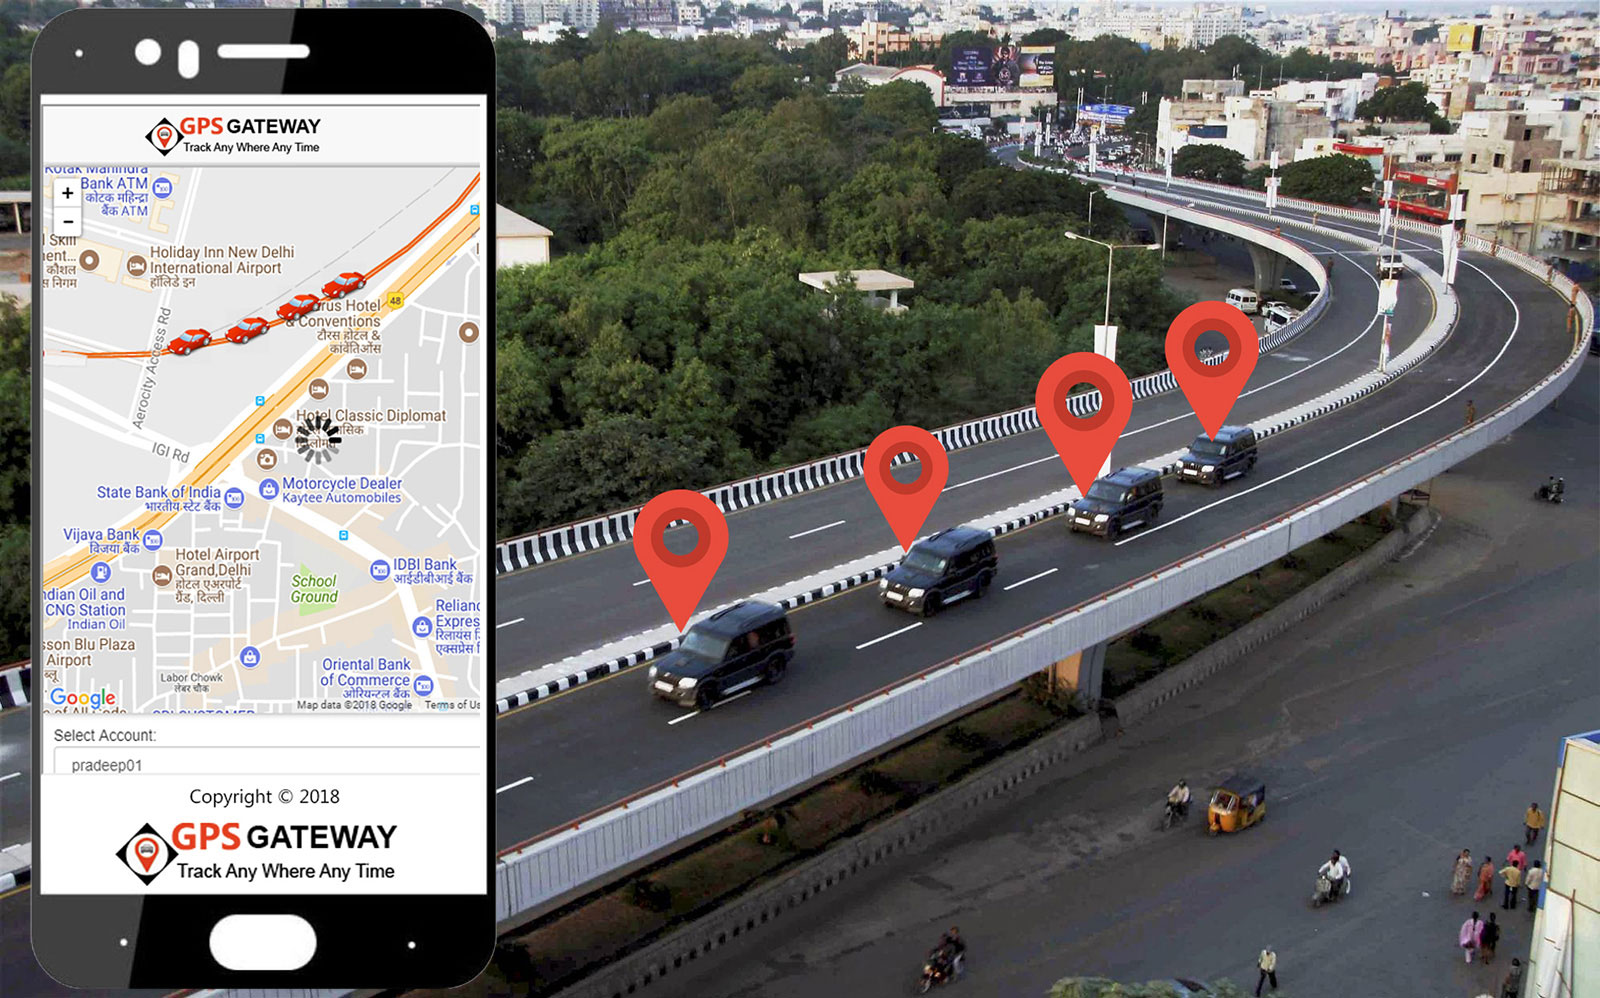 gps tracking by mobile number, gps tracking benefits, gps tracking car, gps tracking companies in india